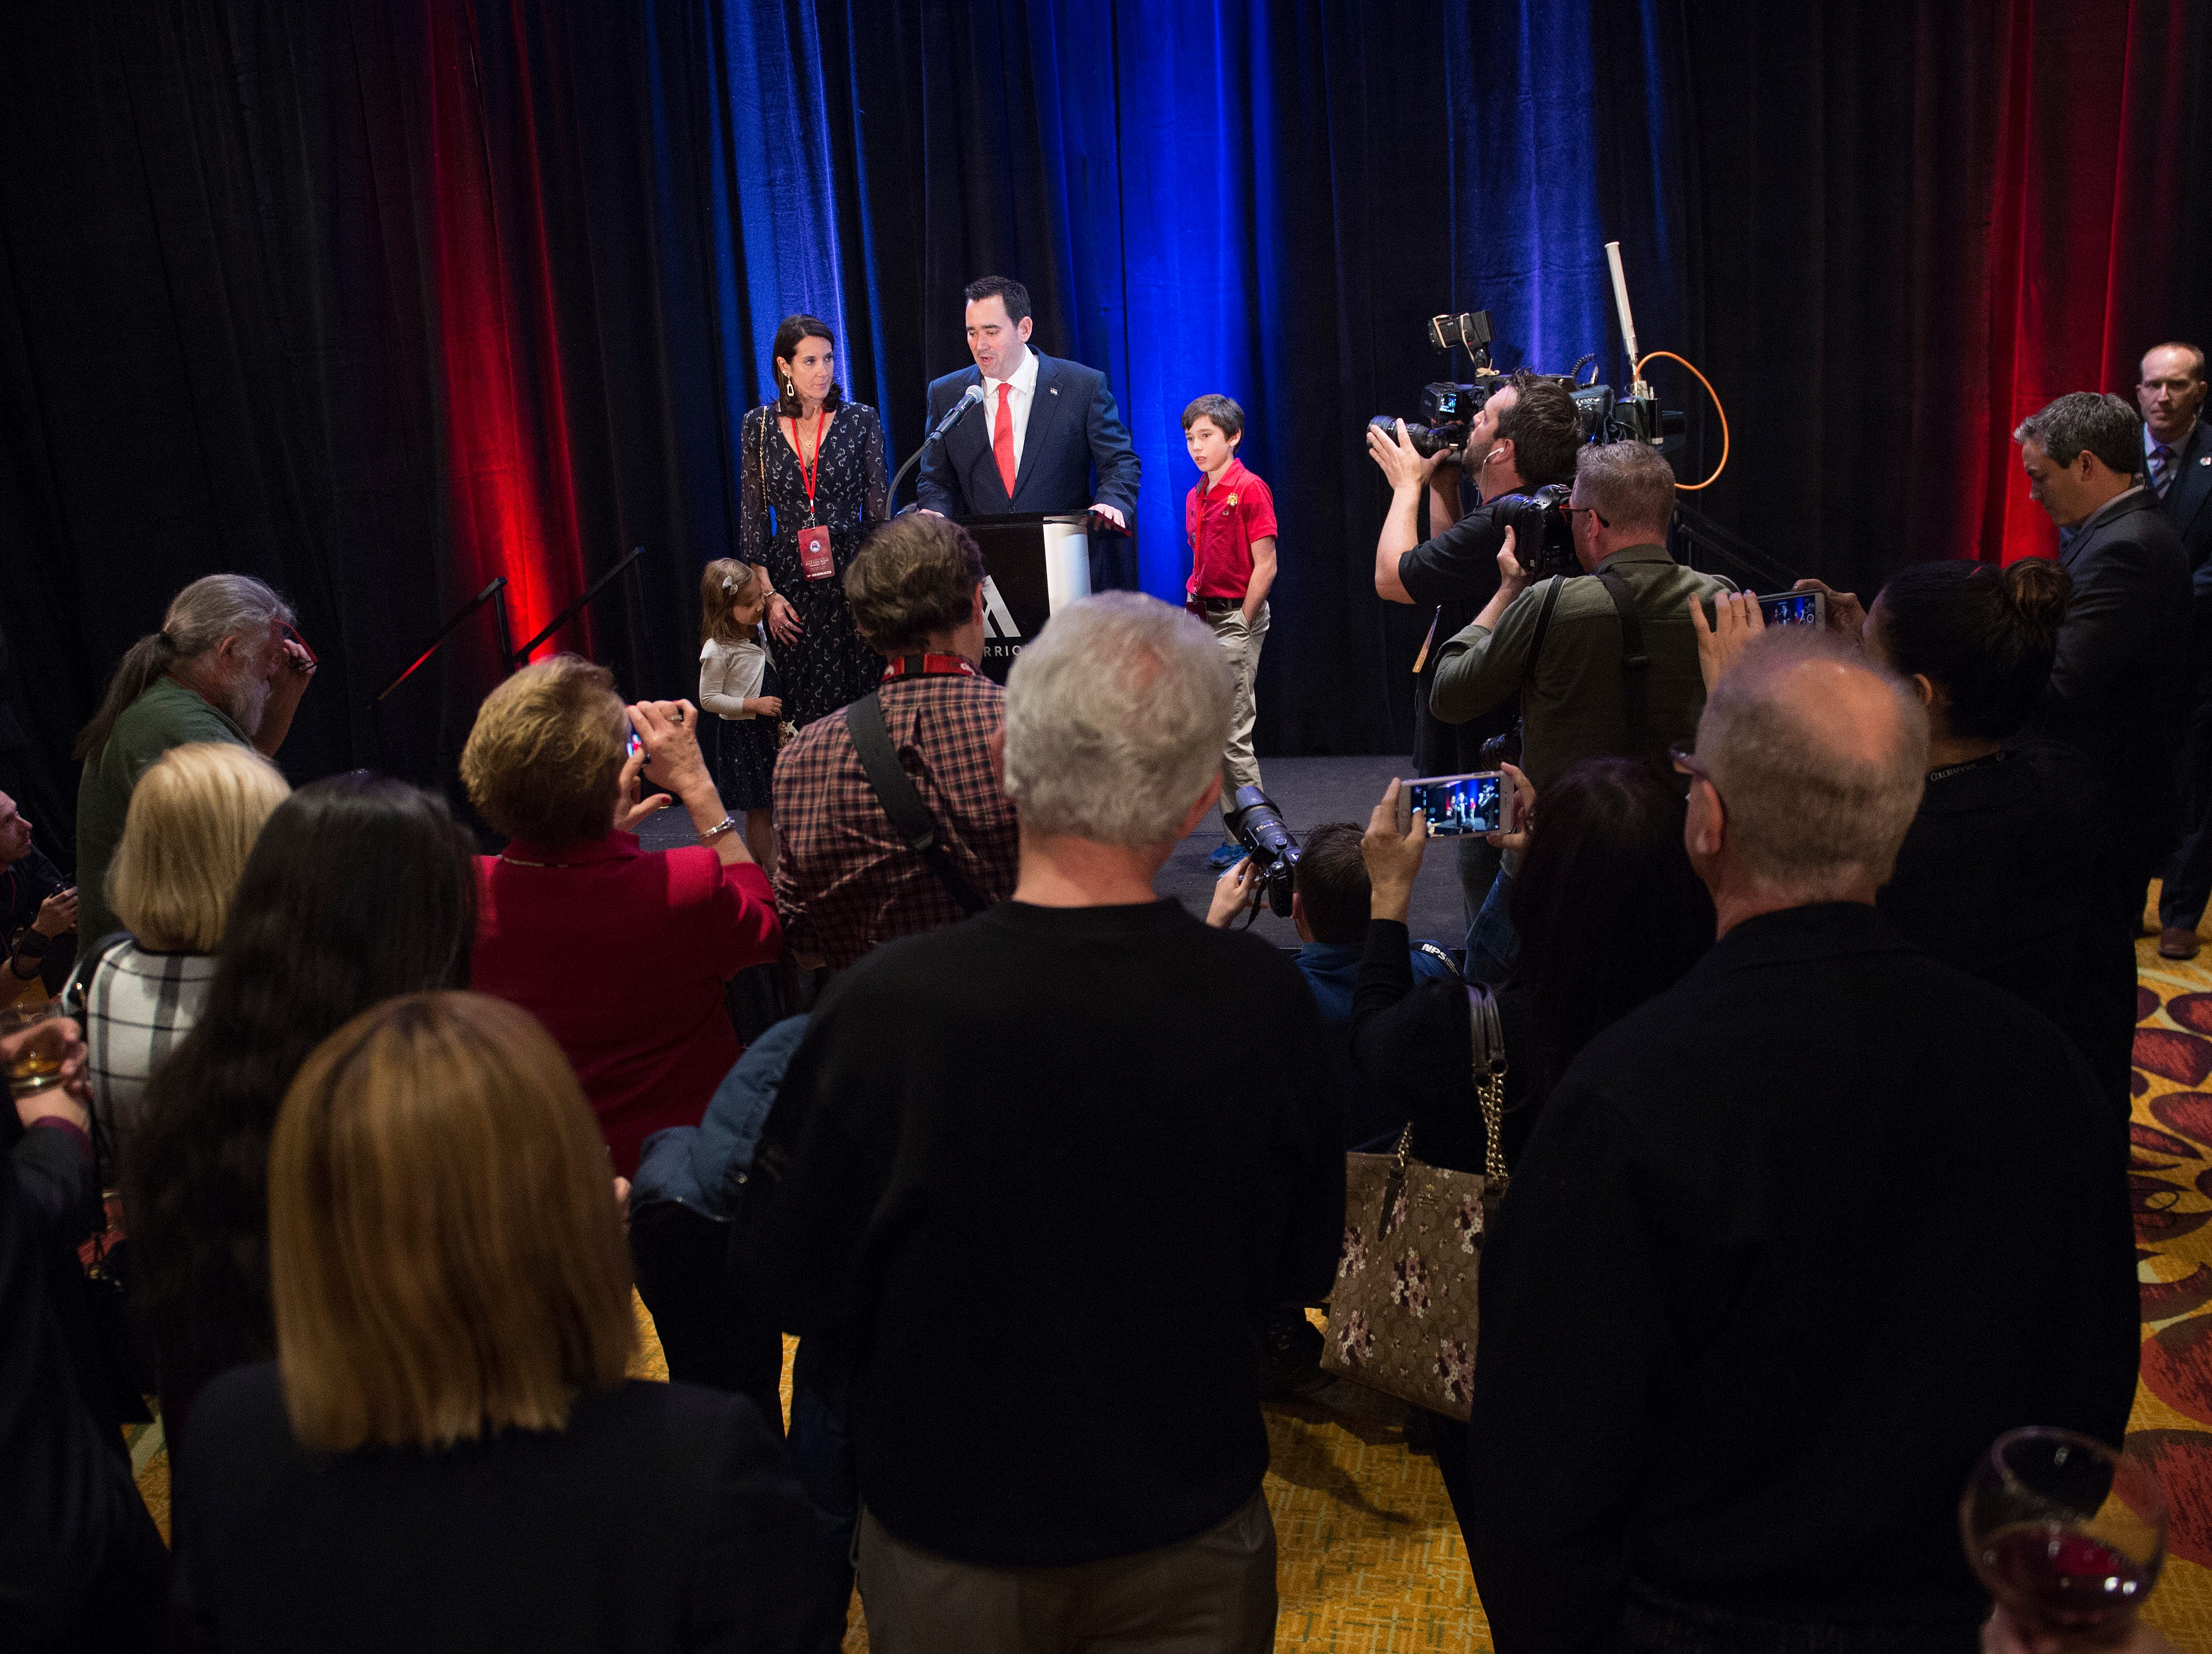 Republican candidate for Colorado governor Walker Stapleton gives a concession speech with his family at his side during a Colorado GOP watch party at the Denver Marriott South at Park Meadows in Lone Tree on Election Day, Tuesday, November 6, 2018.